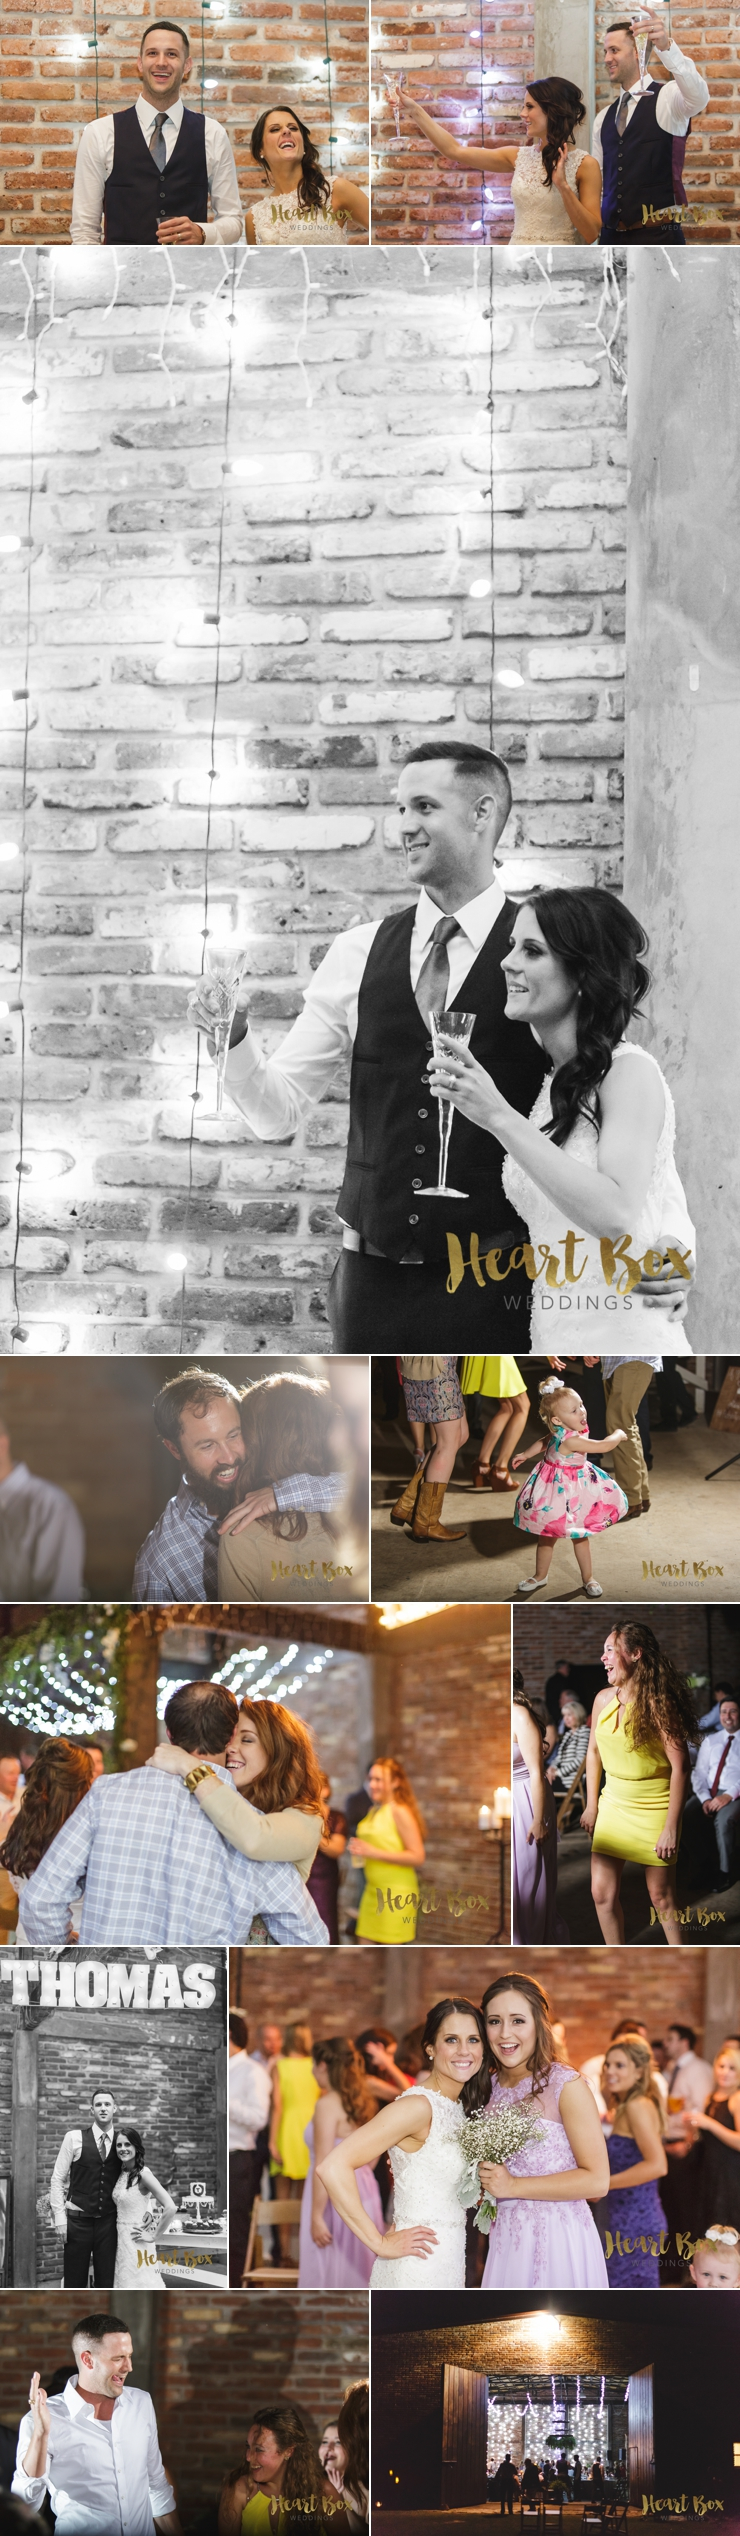 Thomas Wedding Blog Collages 9.jpg